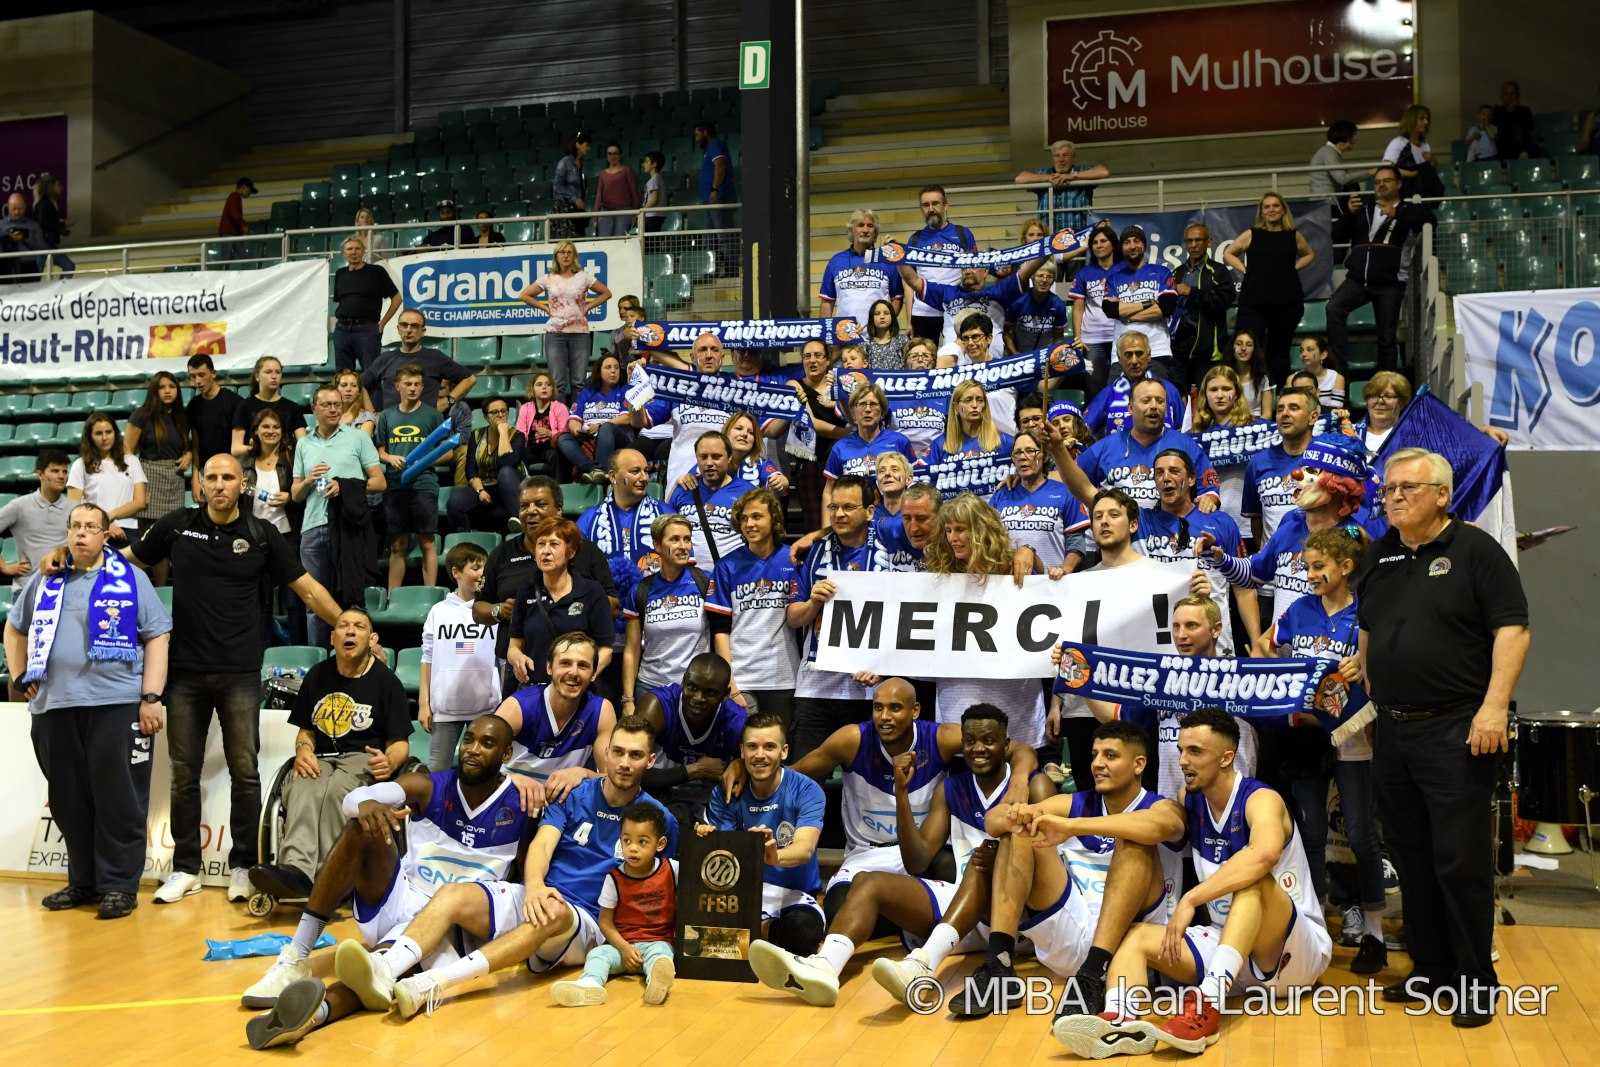 [J.26] Vendée Challans Basket - FC MULHOUSE : 65 - 82 Merci